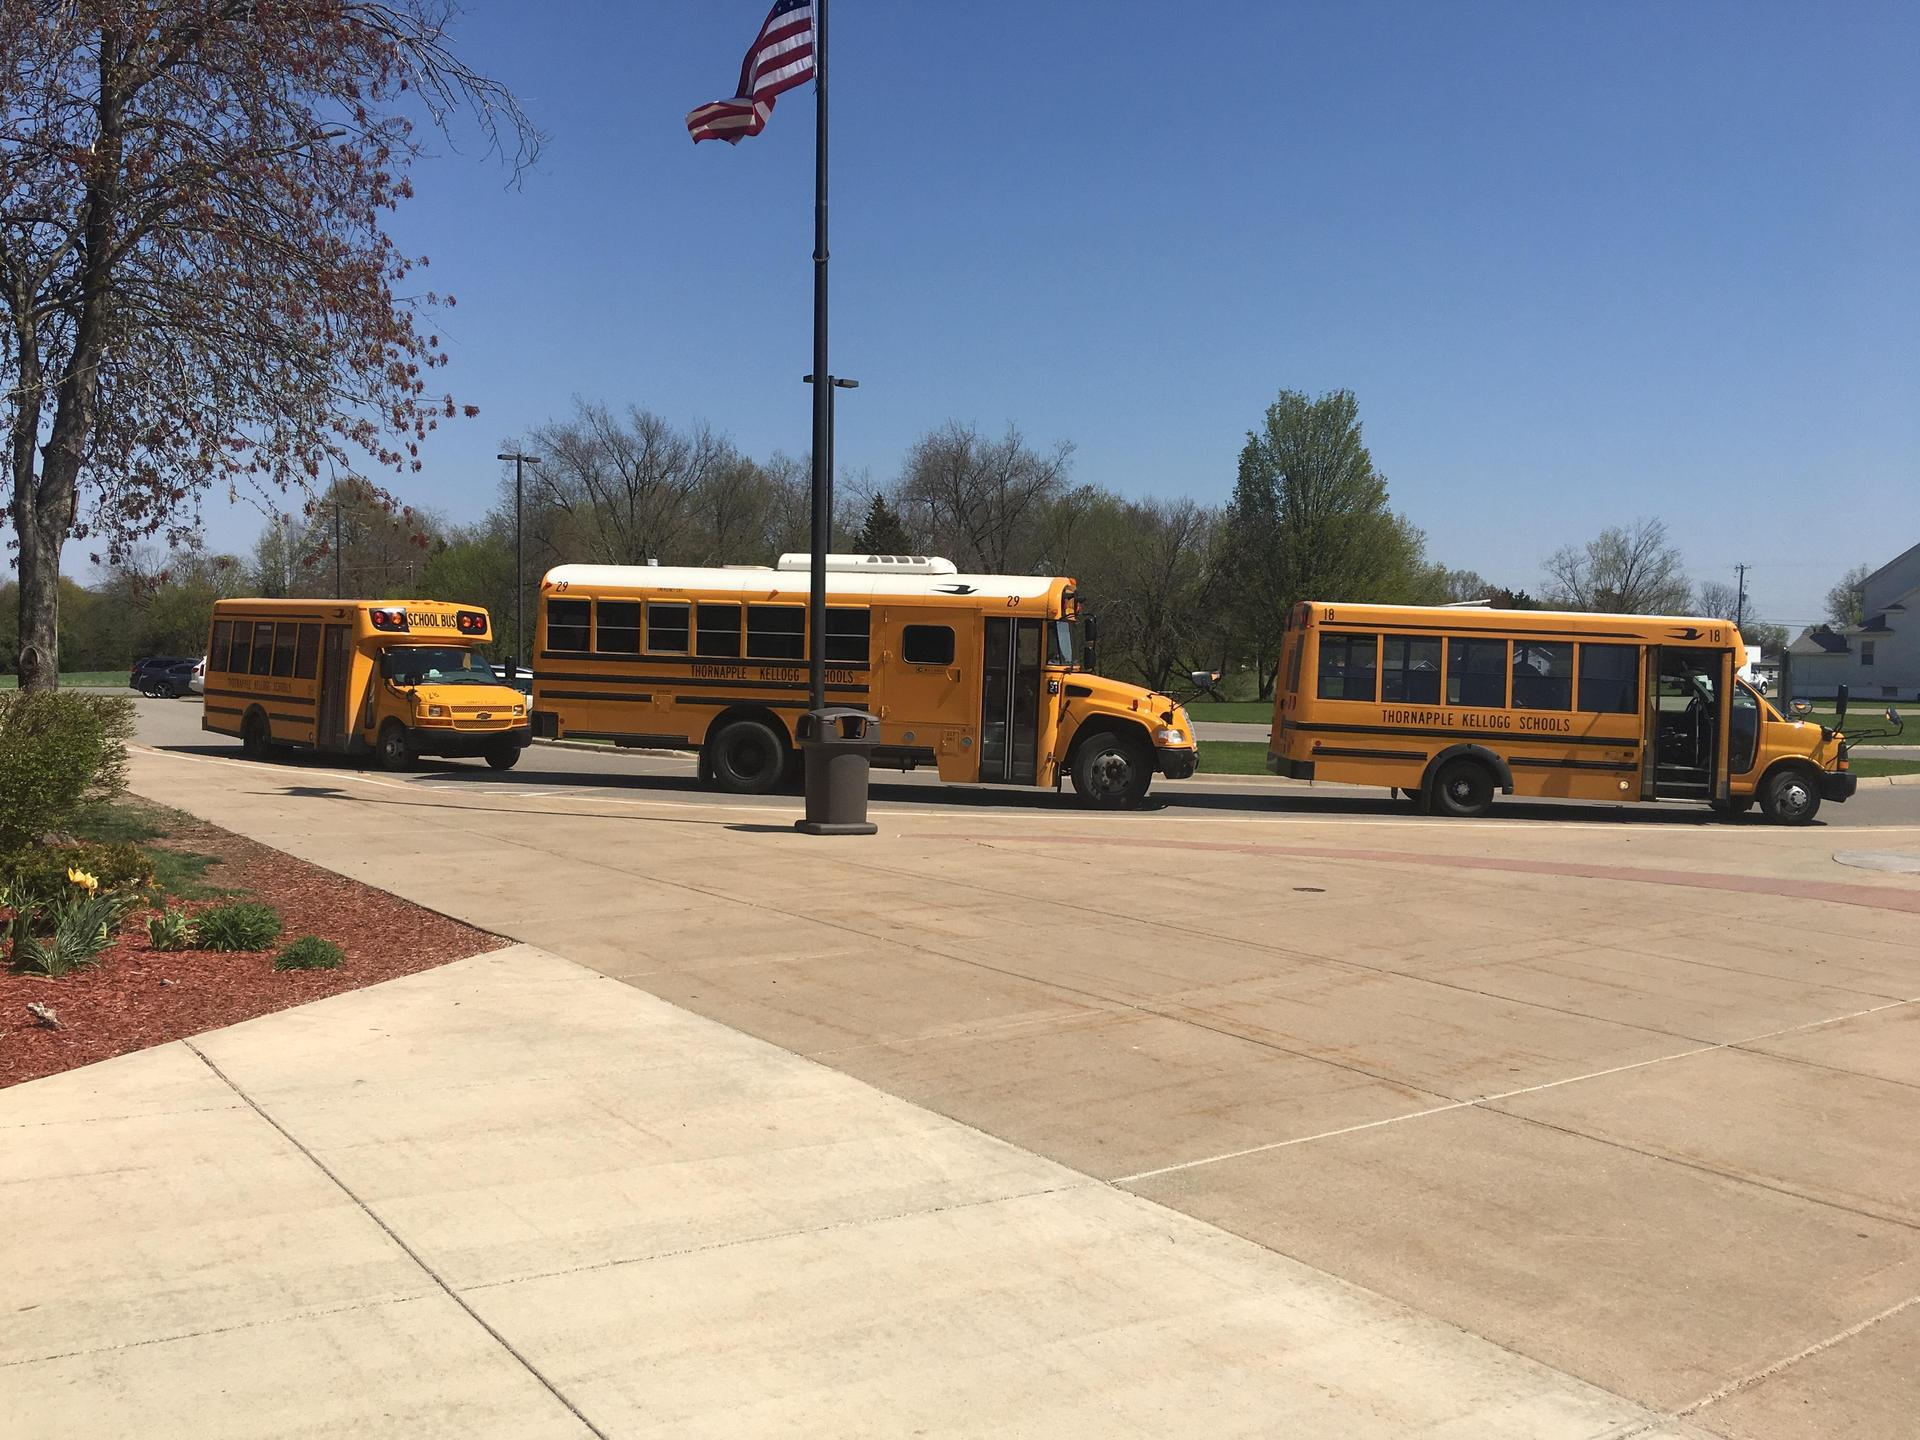 Buses lined up at Lee